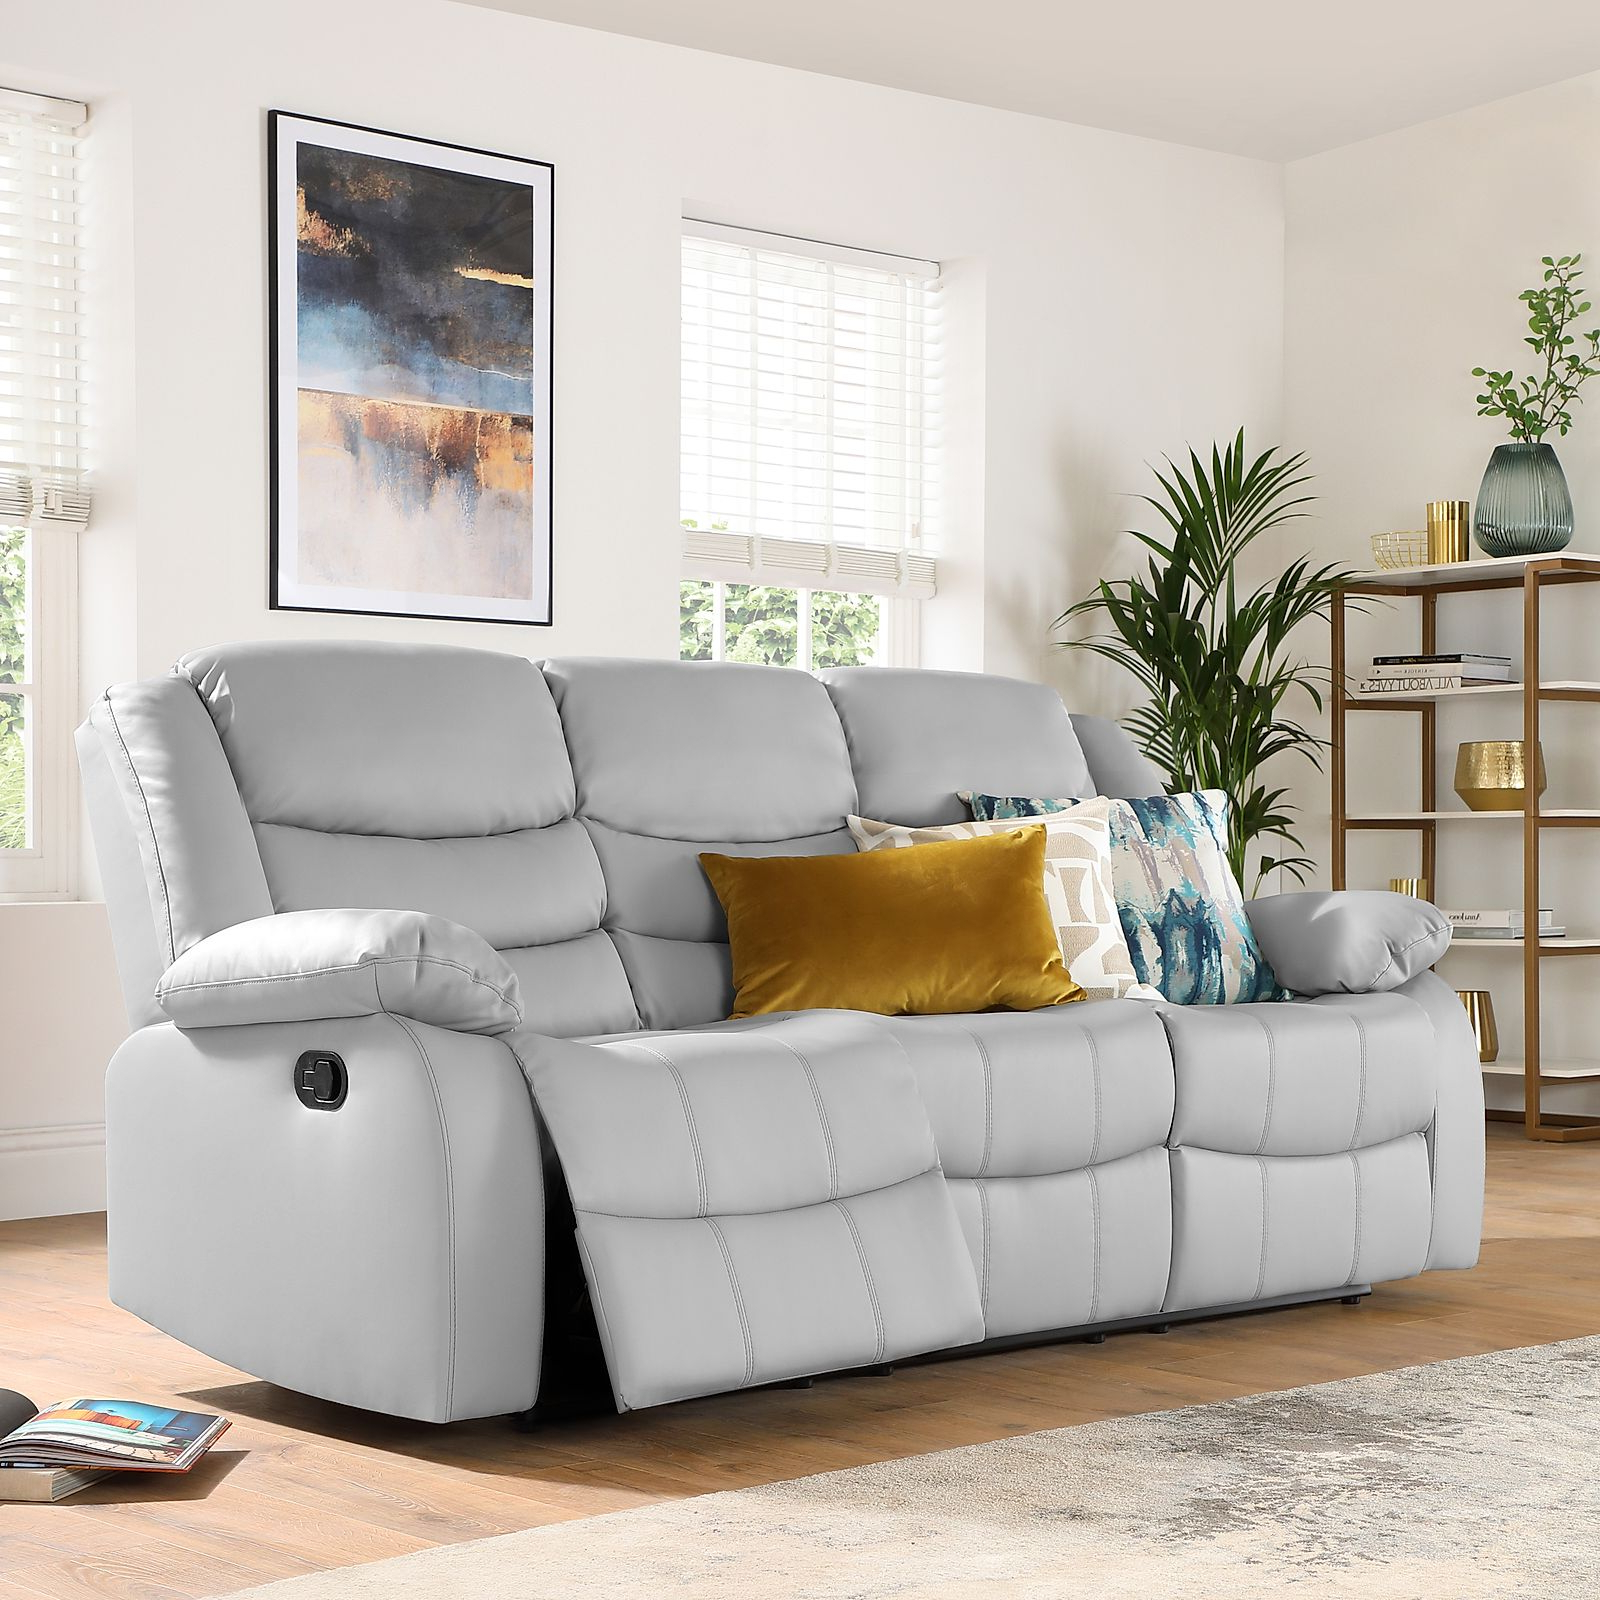 Most Popular Sorrento Light Grey Leather 3 Seater Recliner Sofa Intended For Gray Sofas (View 10 of 20)